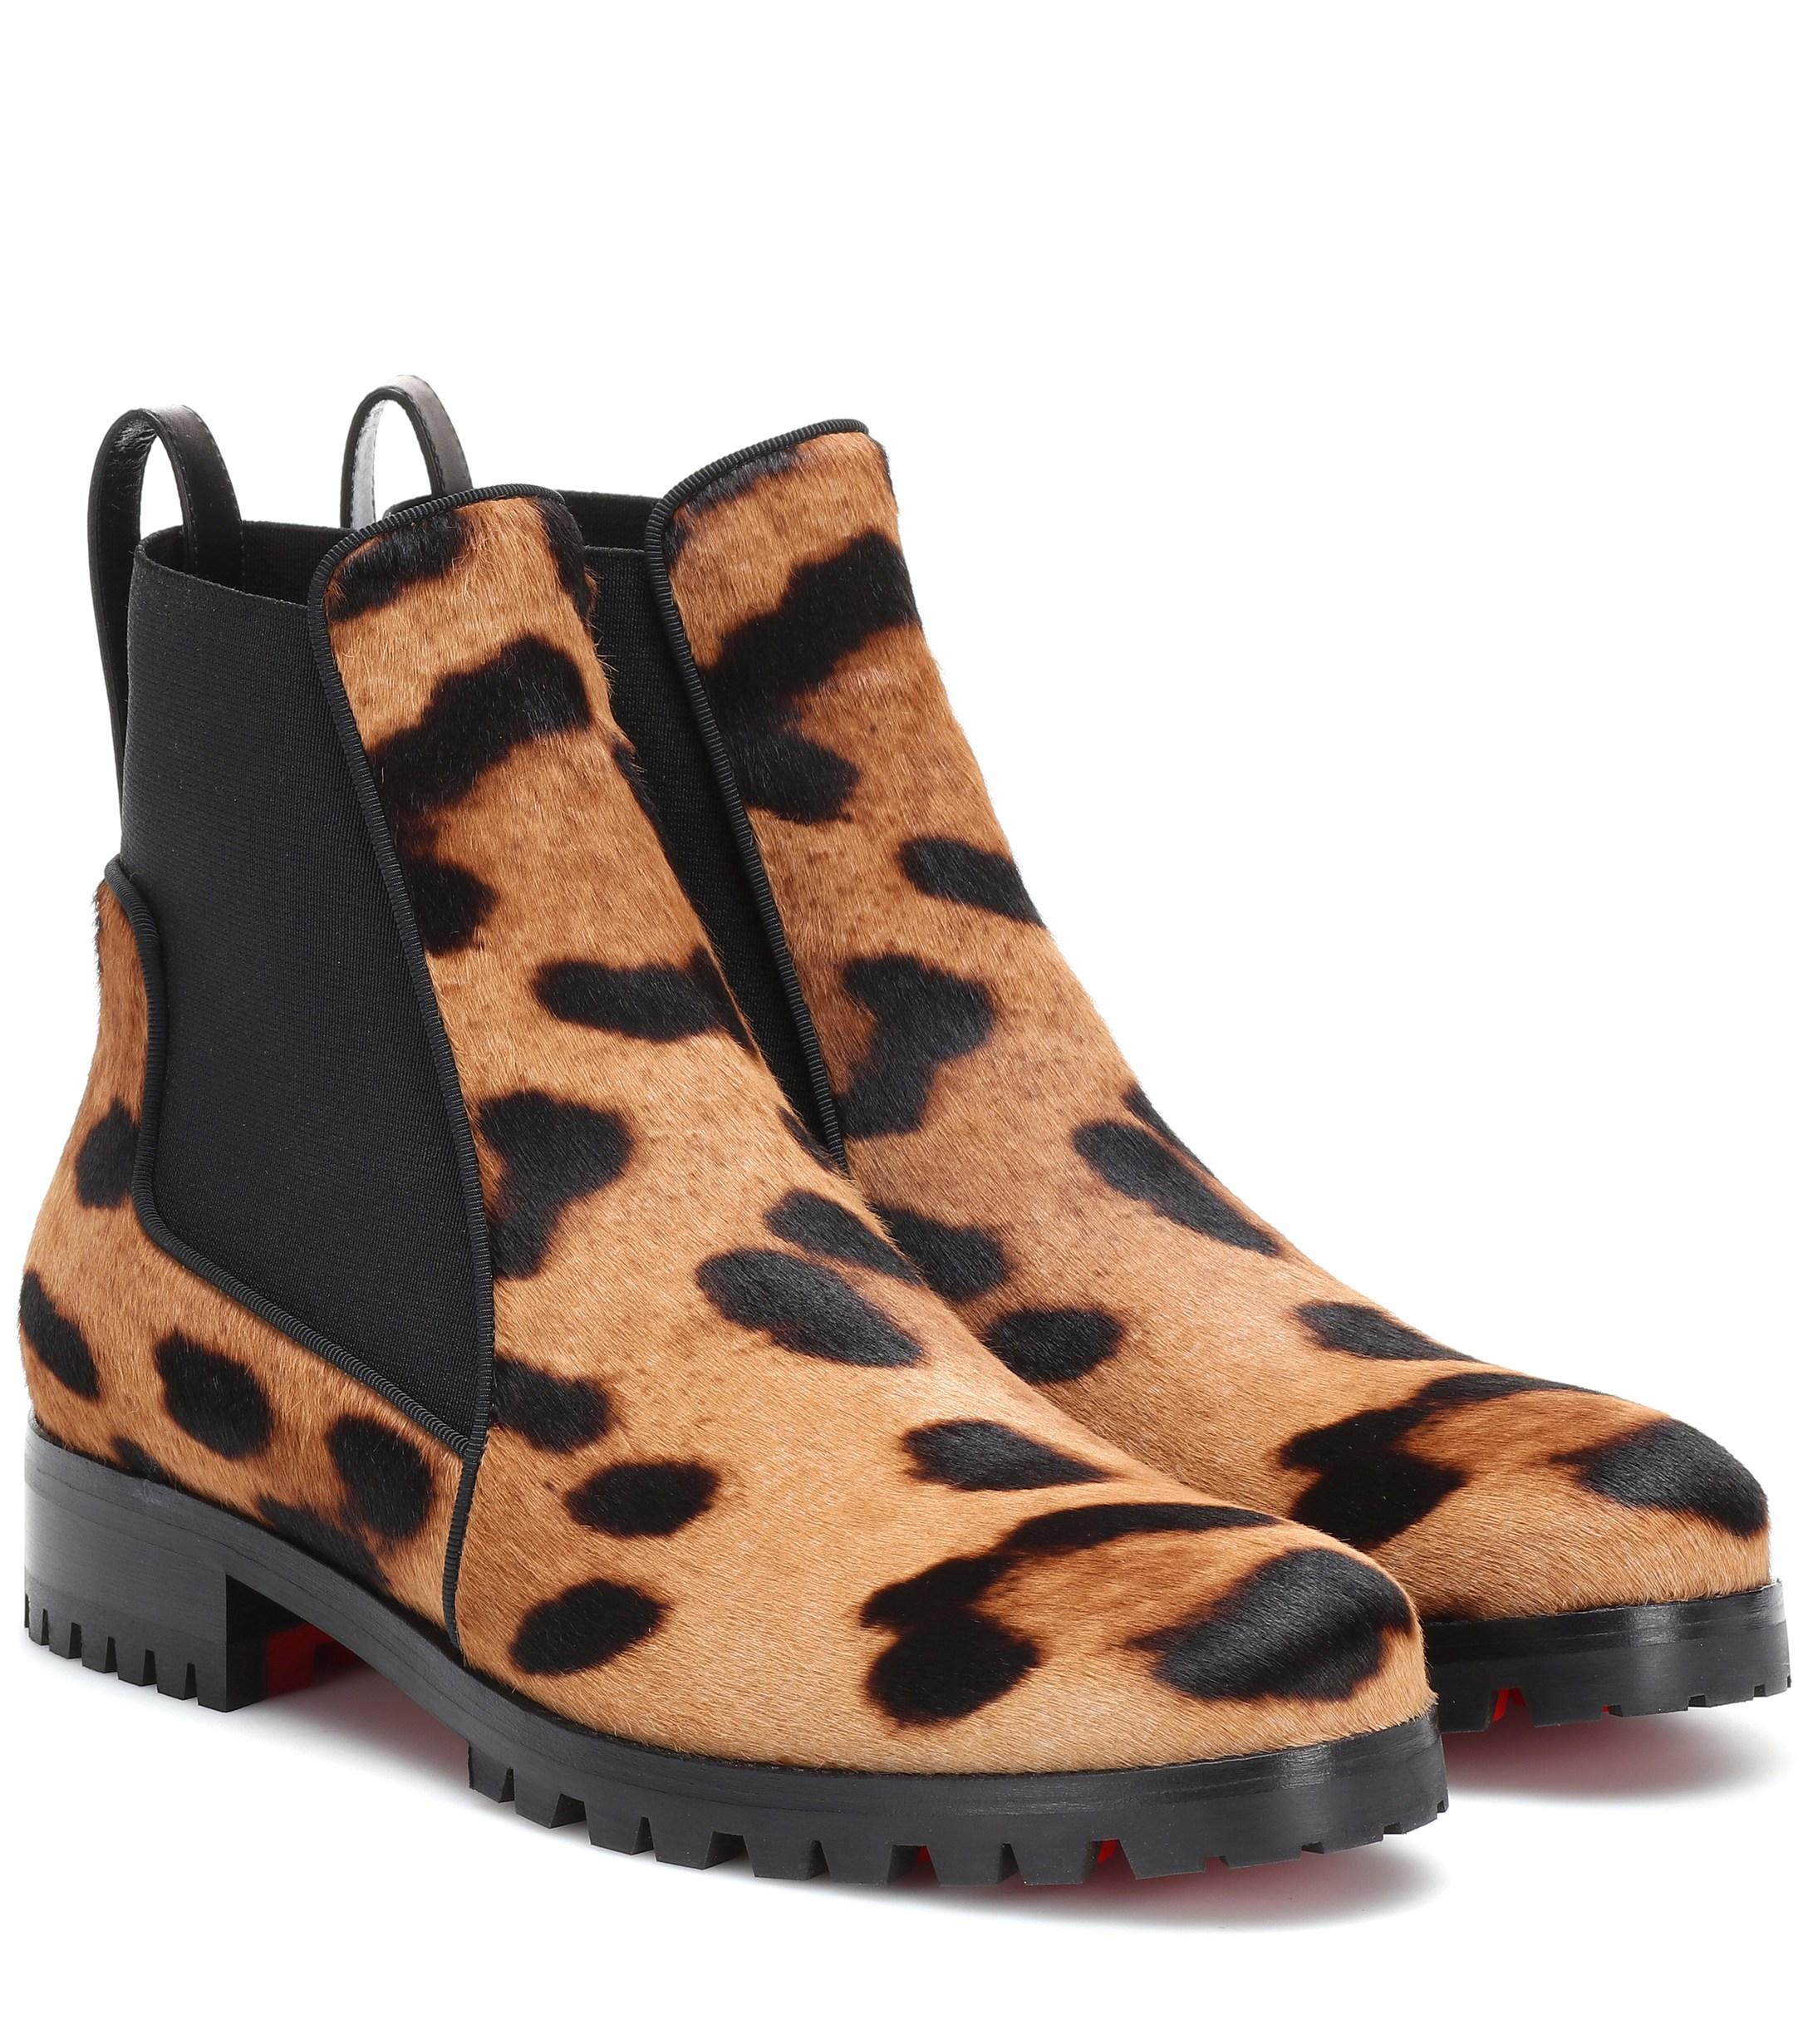 48c6e715007 Women's Brown Marchacroche Calf Hair Ankle Boots